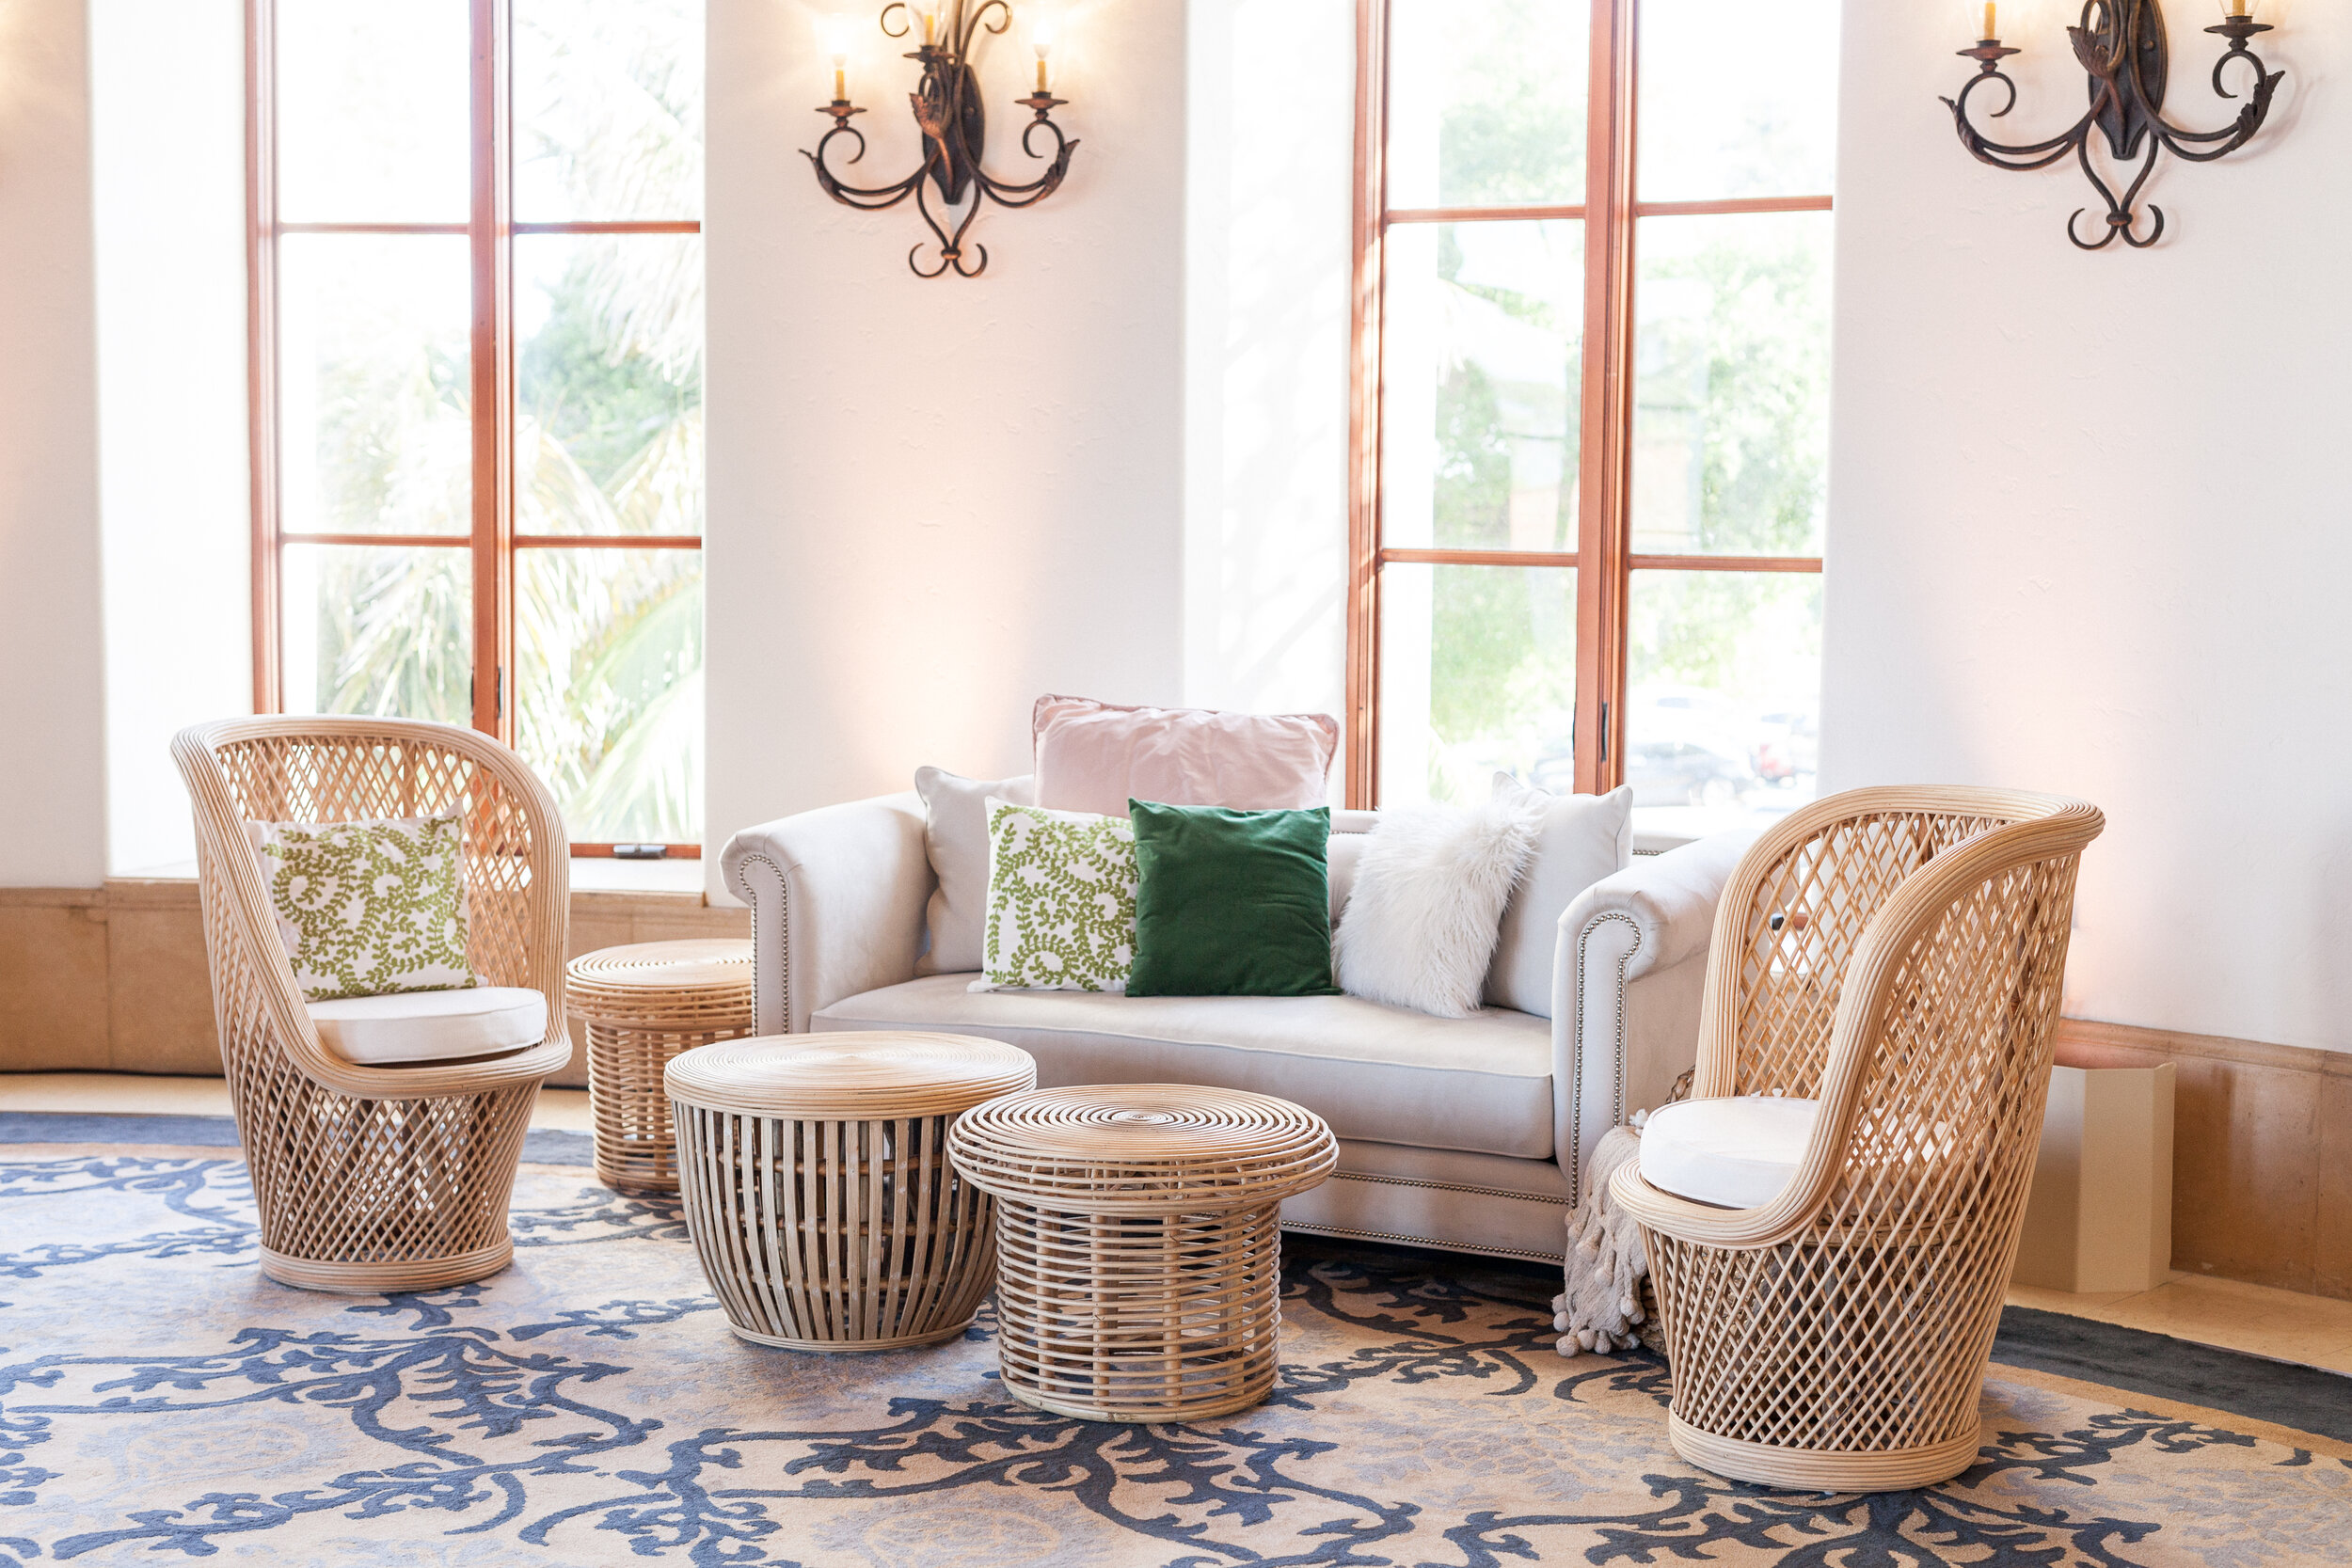 Kate and Alex opted for lounges around the dance floor in a natural tone to match their invitation suite and we popped the lounges with colorful pillows in green and blush